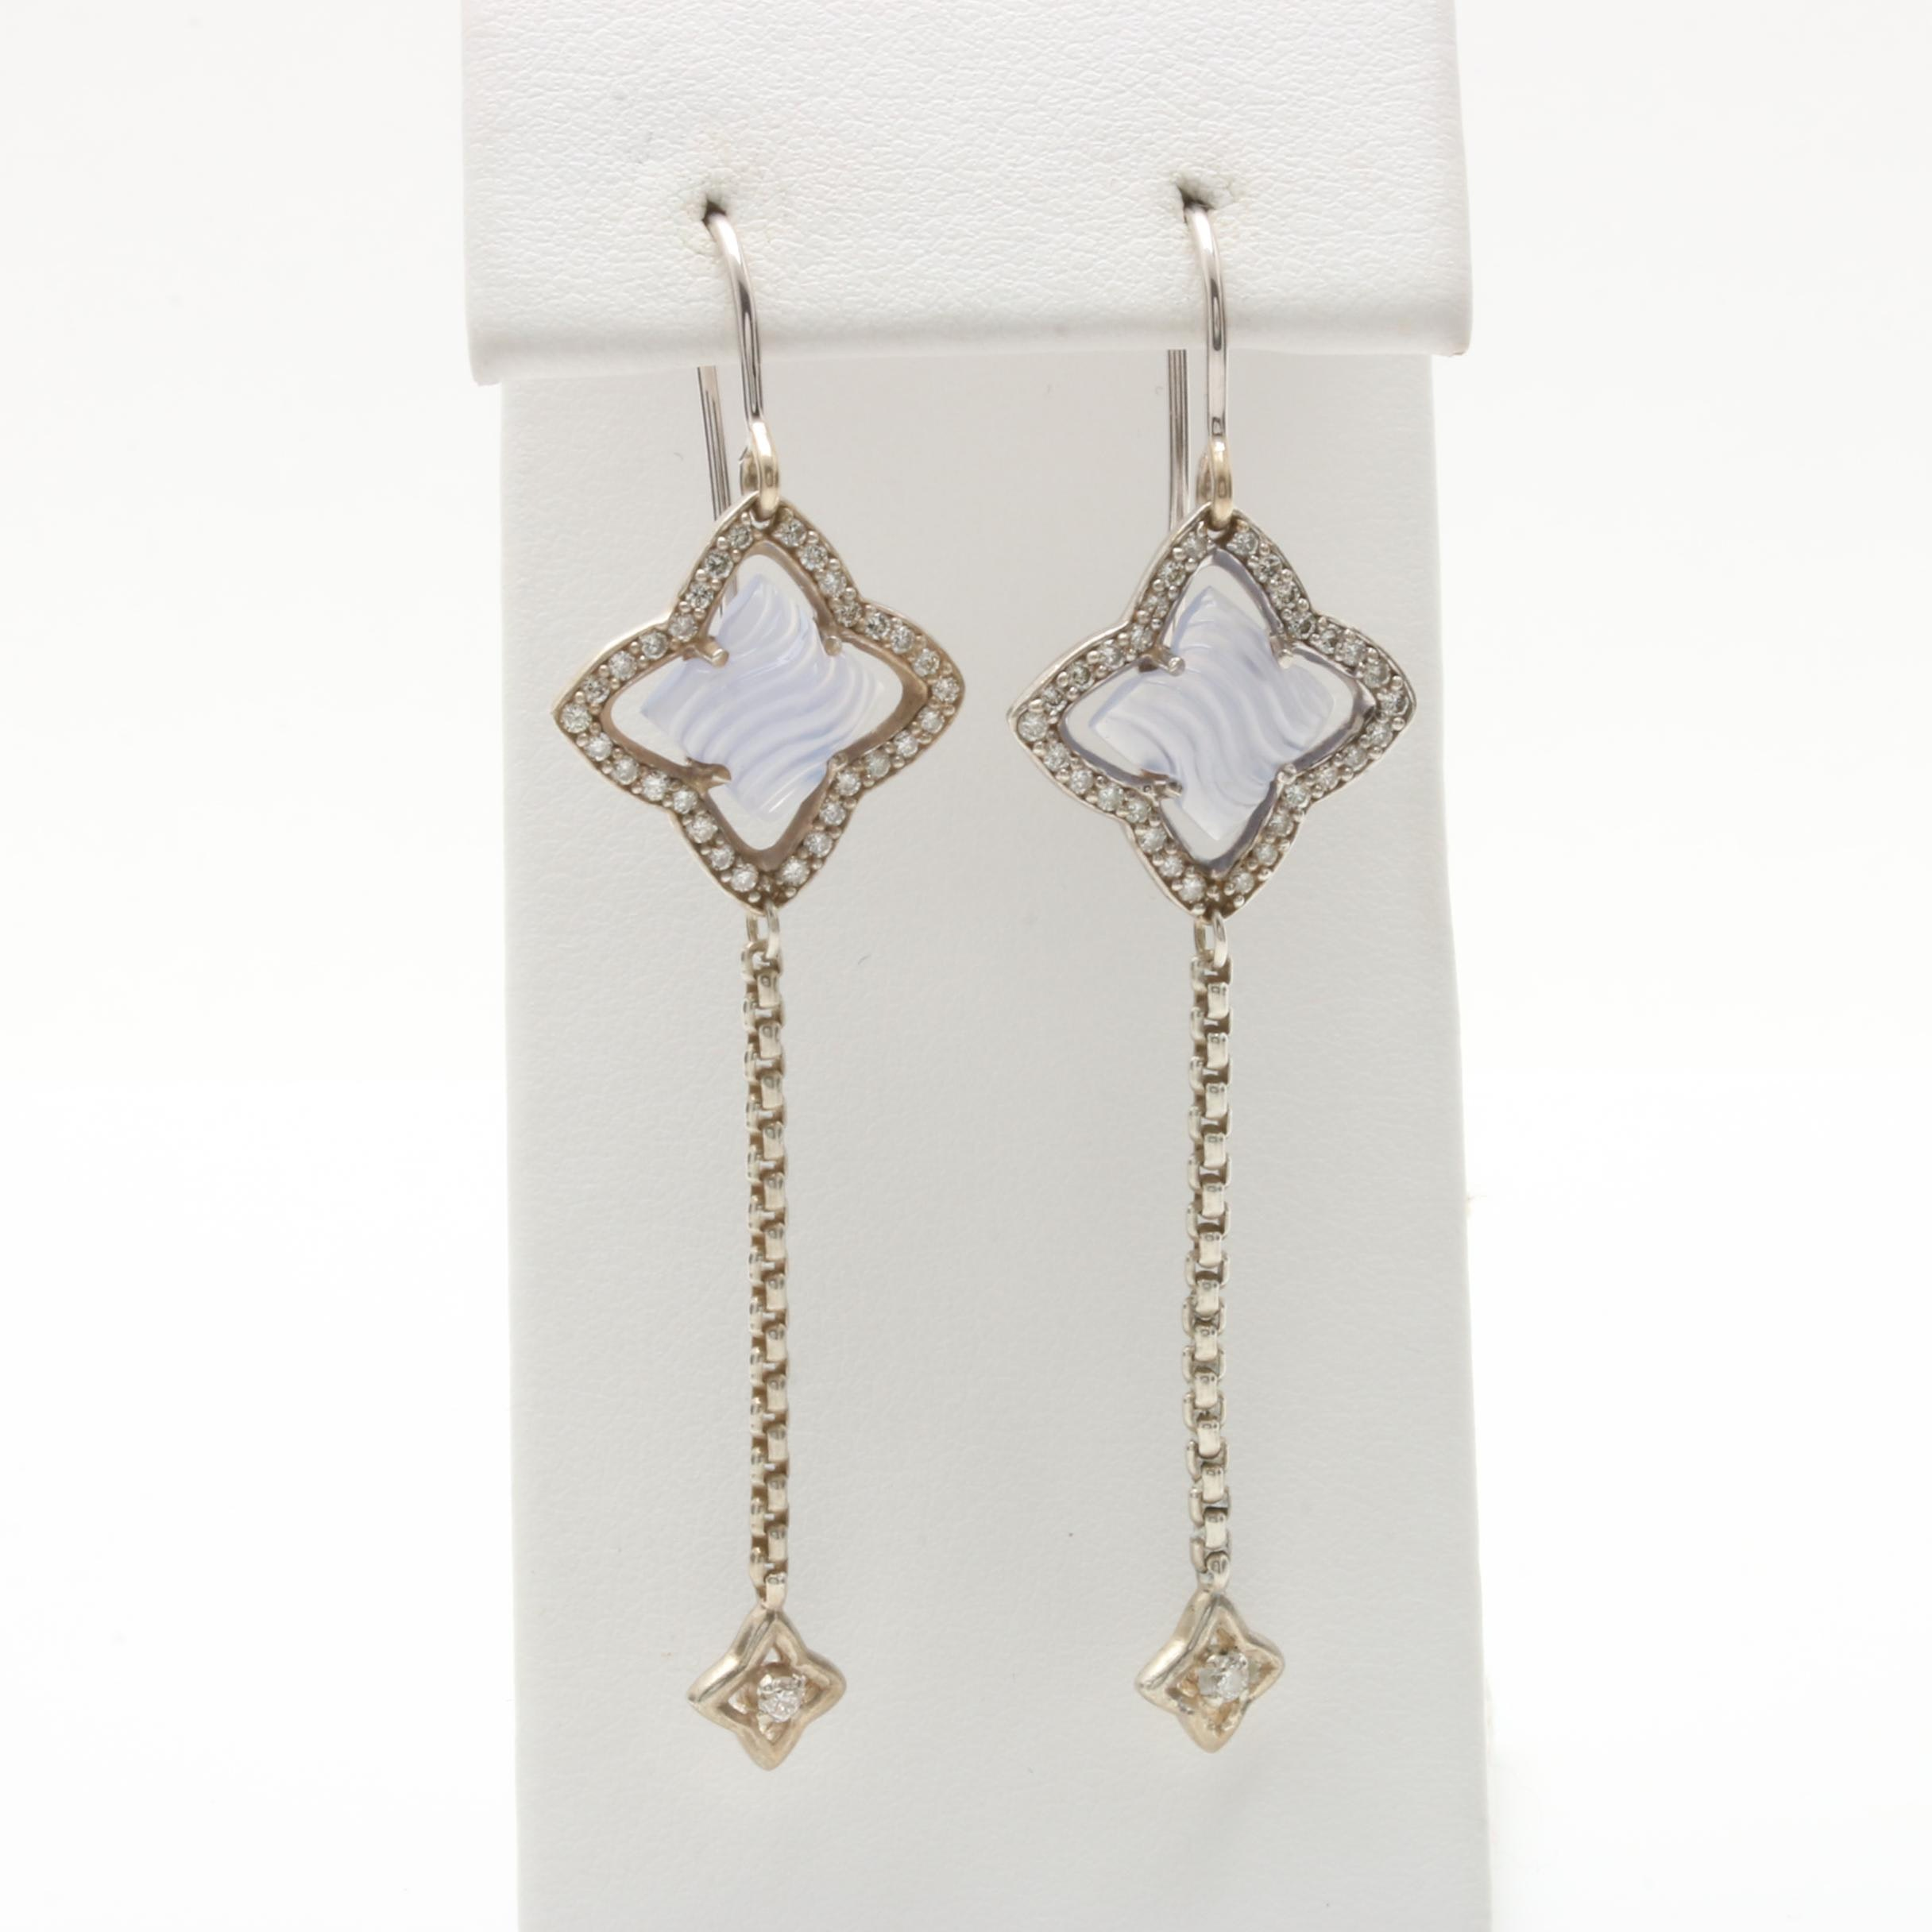 David Yurman Sterling Silver and 18K White Gold Chalcedony and Diamond Earrings